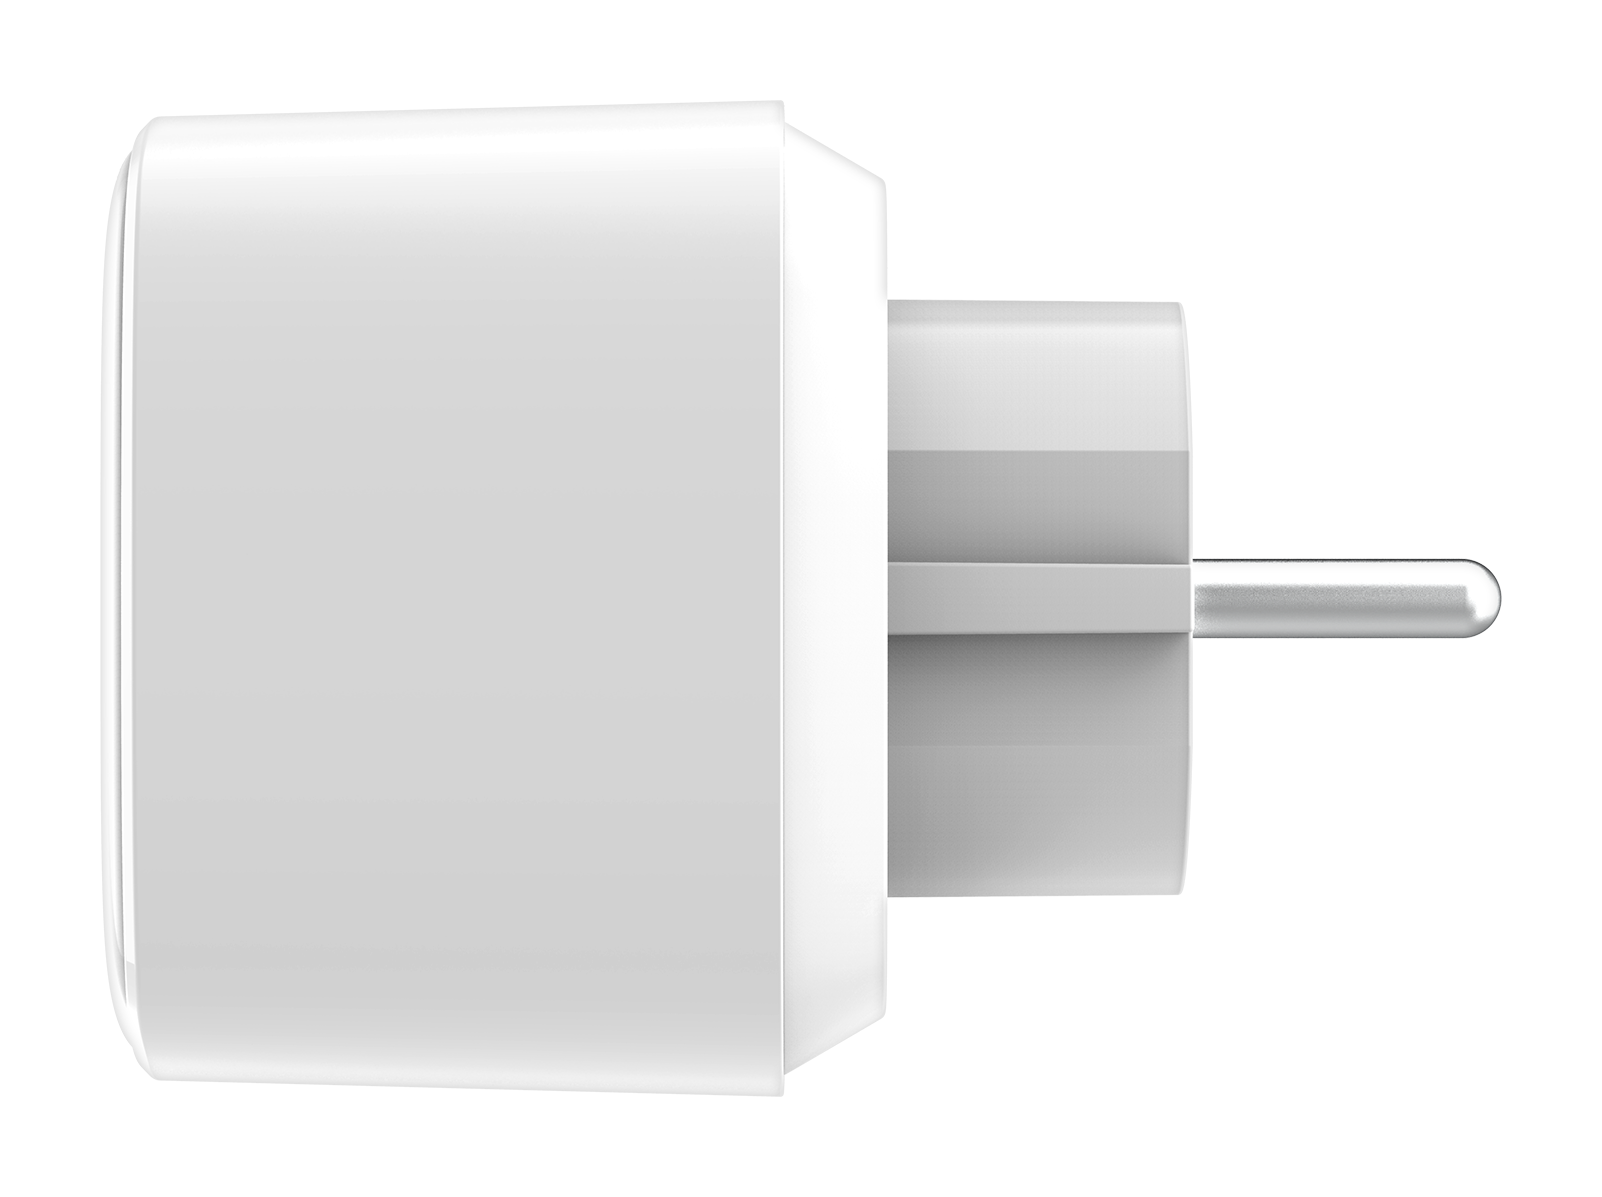 DSP-W118 Mini Wi-Fi Smart Plug - Right Side EU